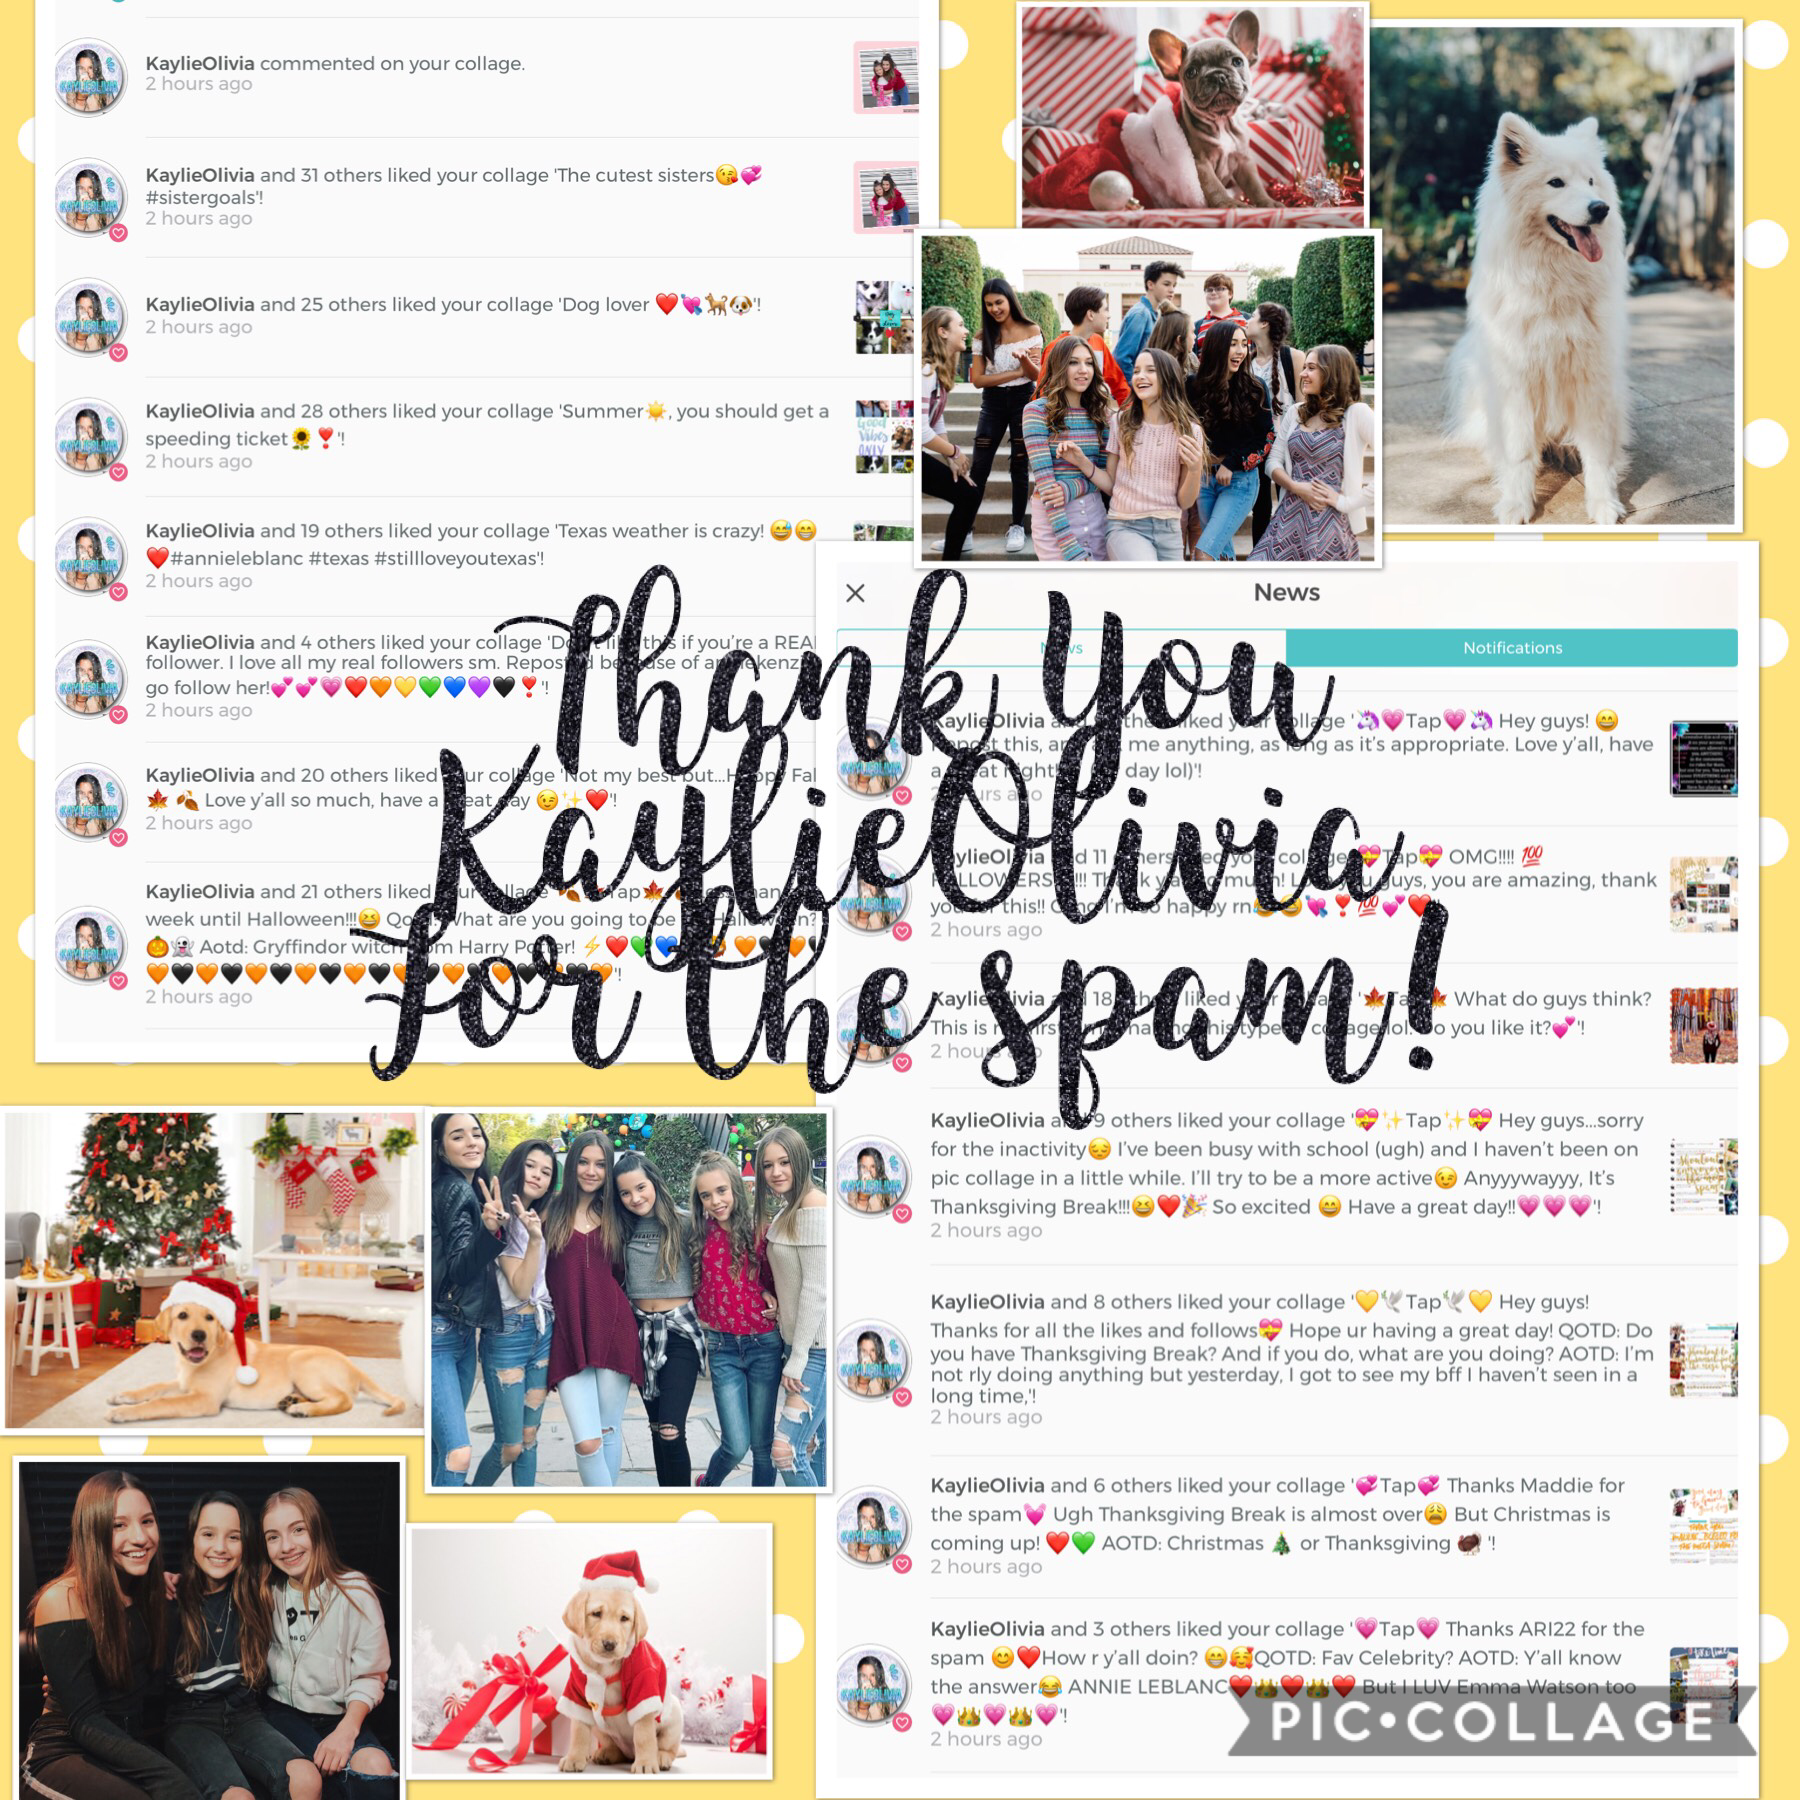 💛🎄Tap🎄💛 Thx KaylieOlivia 4 the spam 💖 it's almost CHRISTMAS!!!🎄❤️💚!!! Aaaaand my birthday (December 19) 😜 So excited to celebrate w my friends and family! QOTD: Are you going out of town for Christmas? AOTD: Nope just celebrating with my family and friend